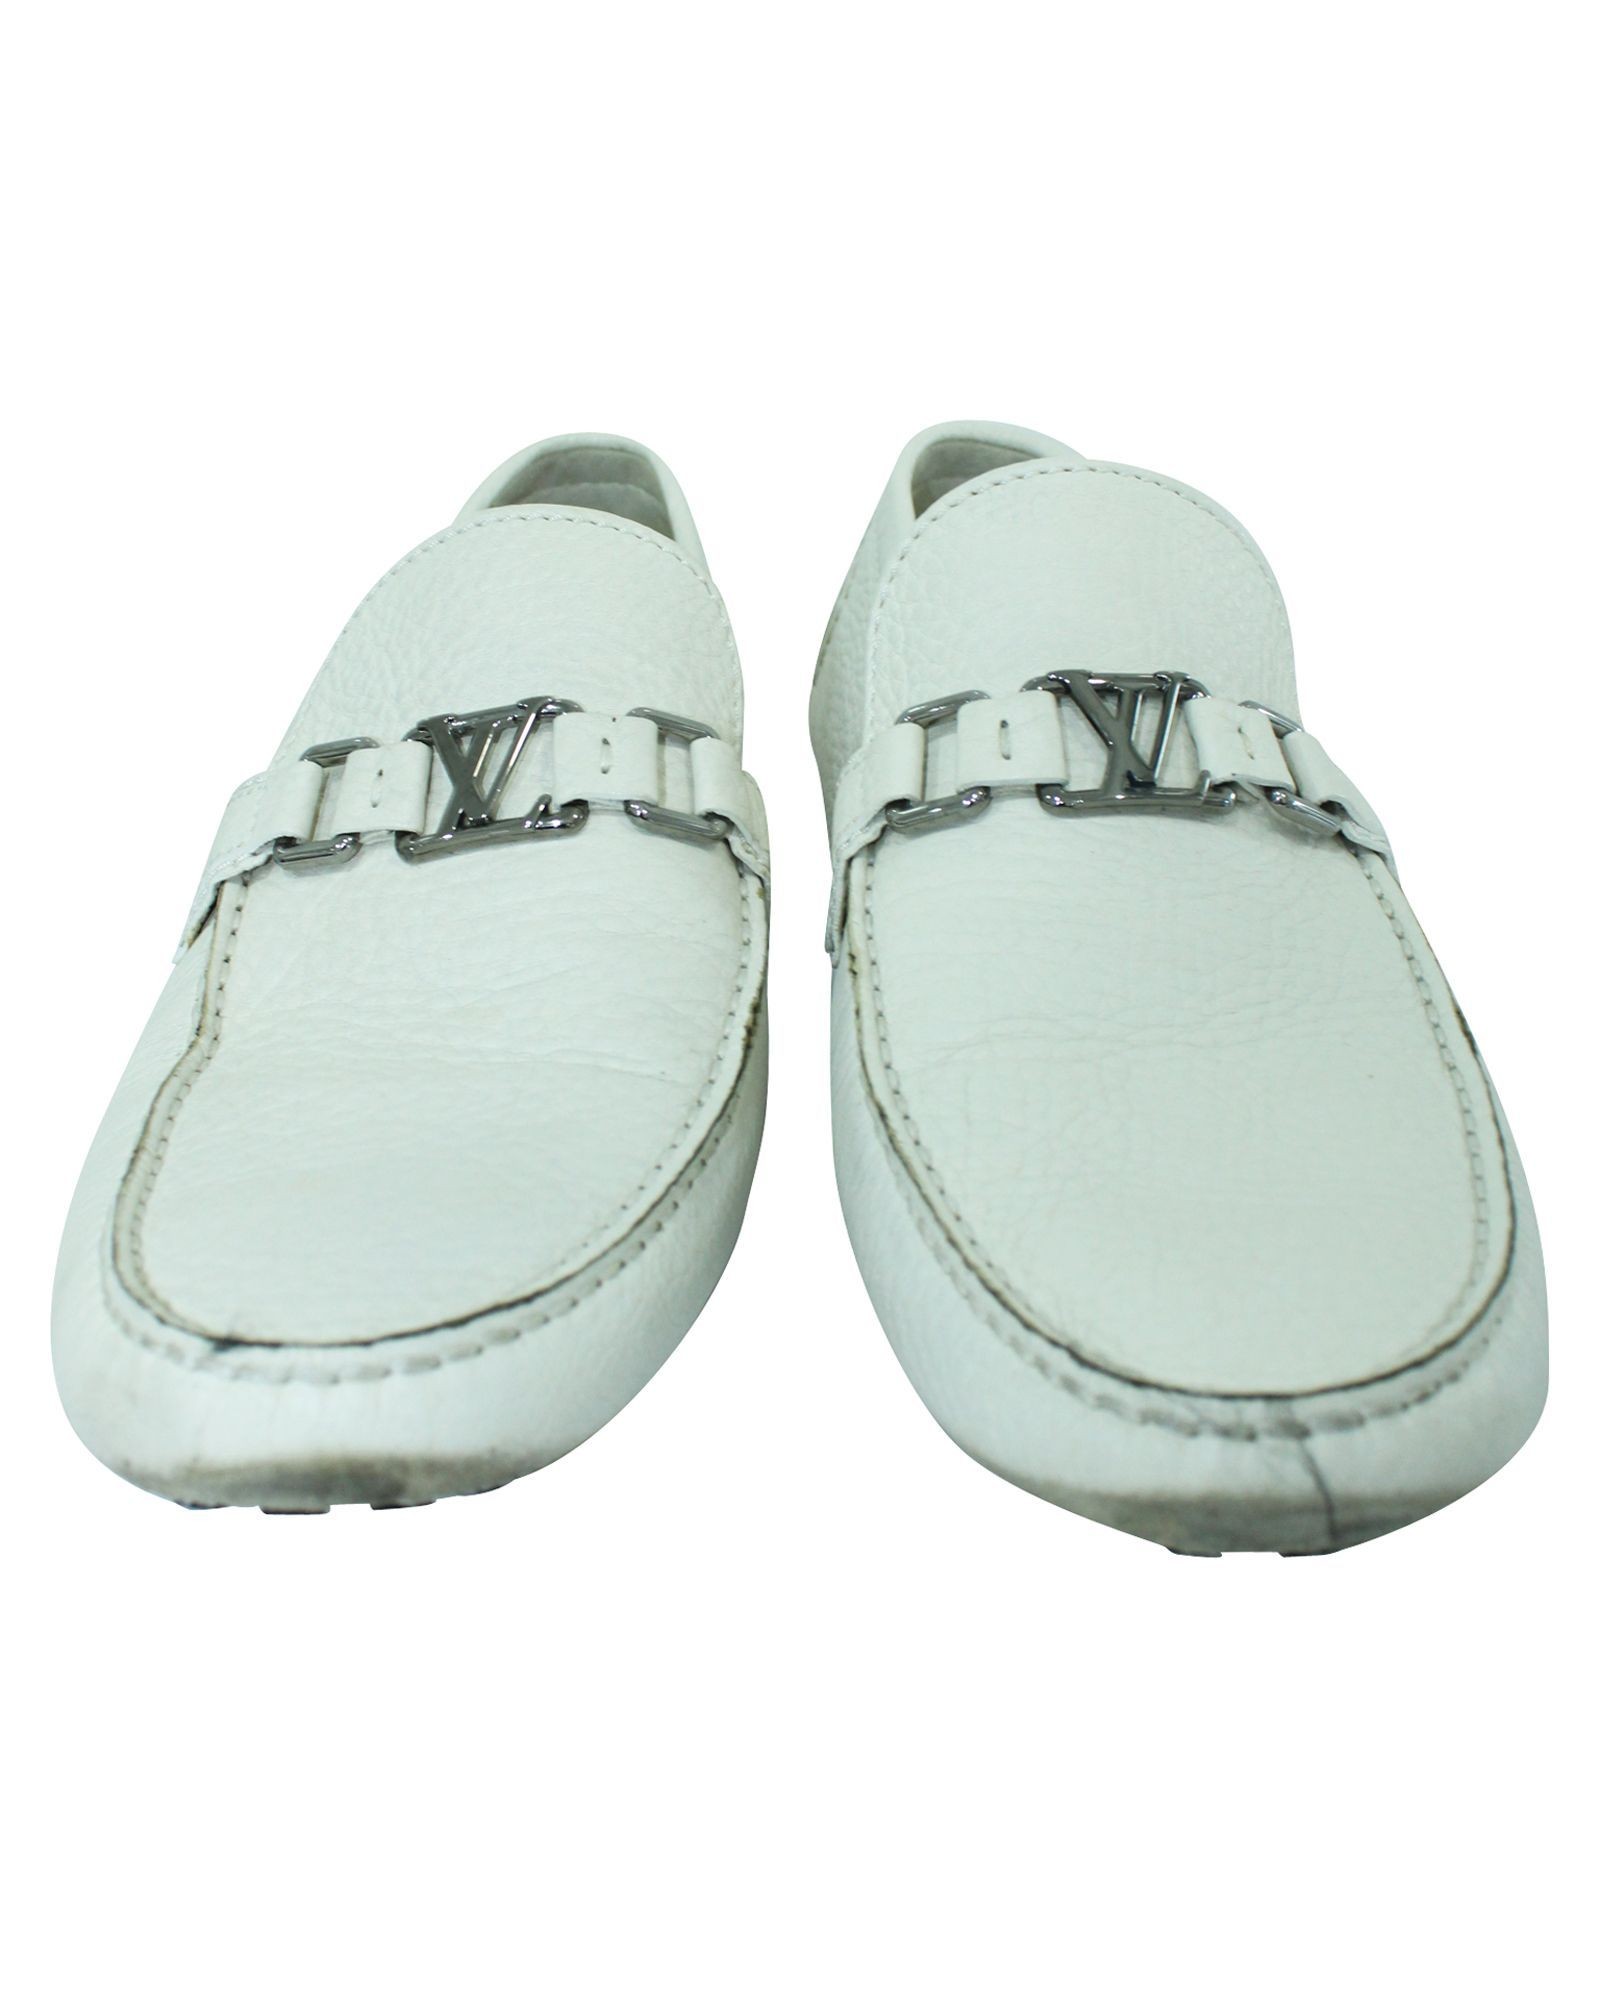 Louis Vuitton White Driving Leather Loafers -Pre Owned Condition Good